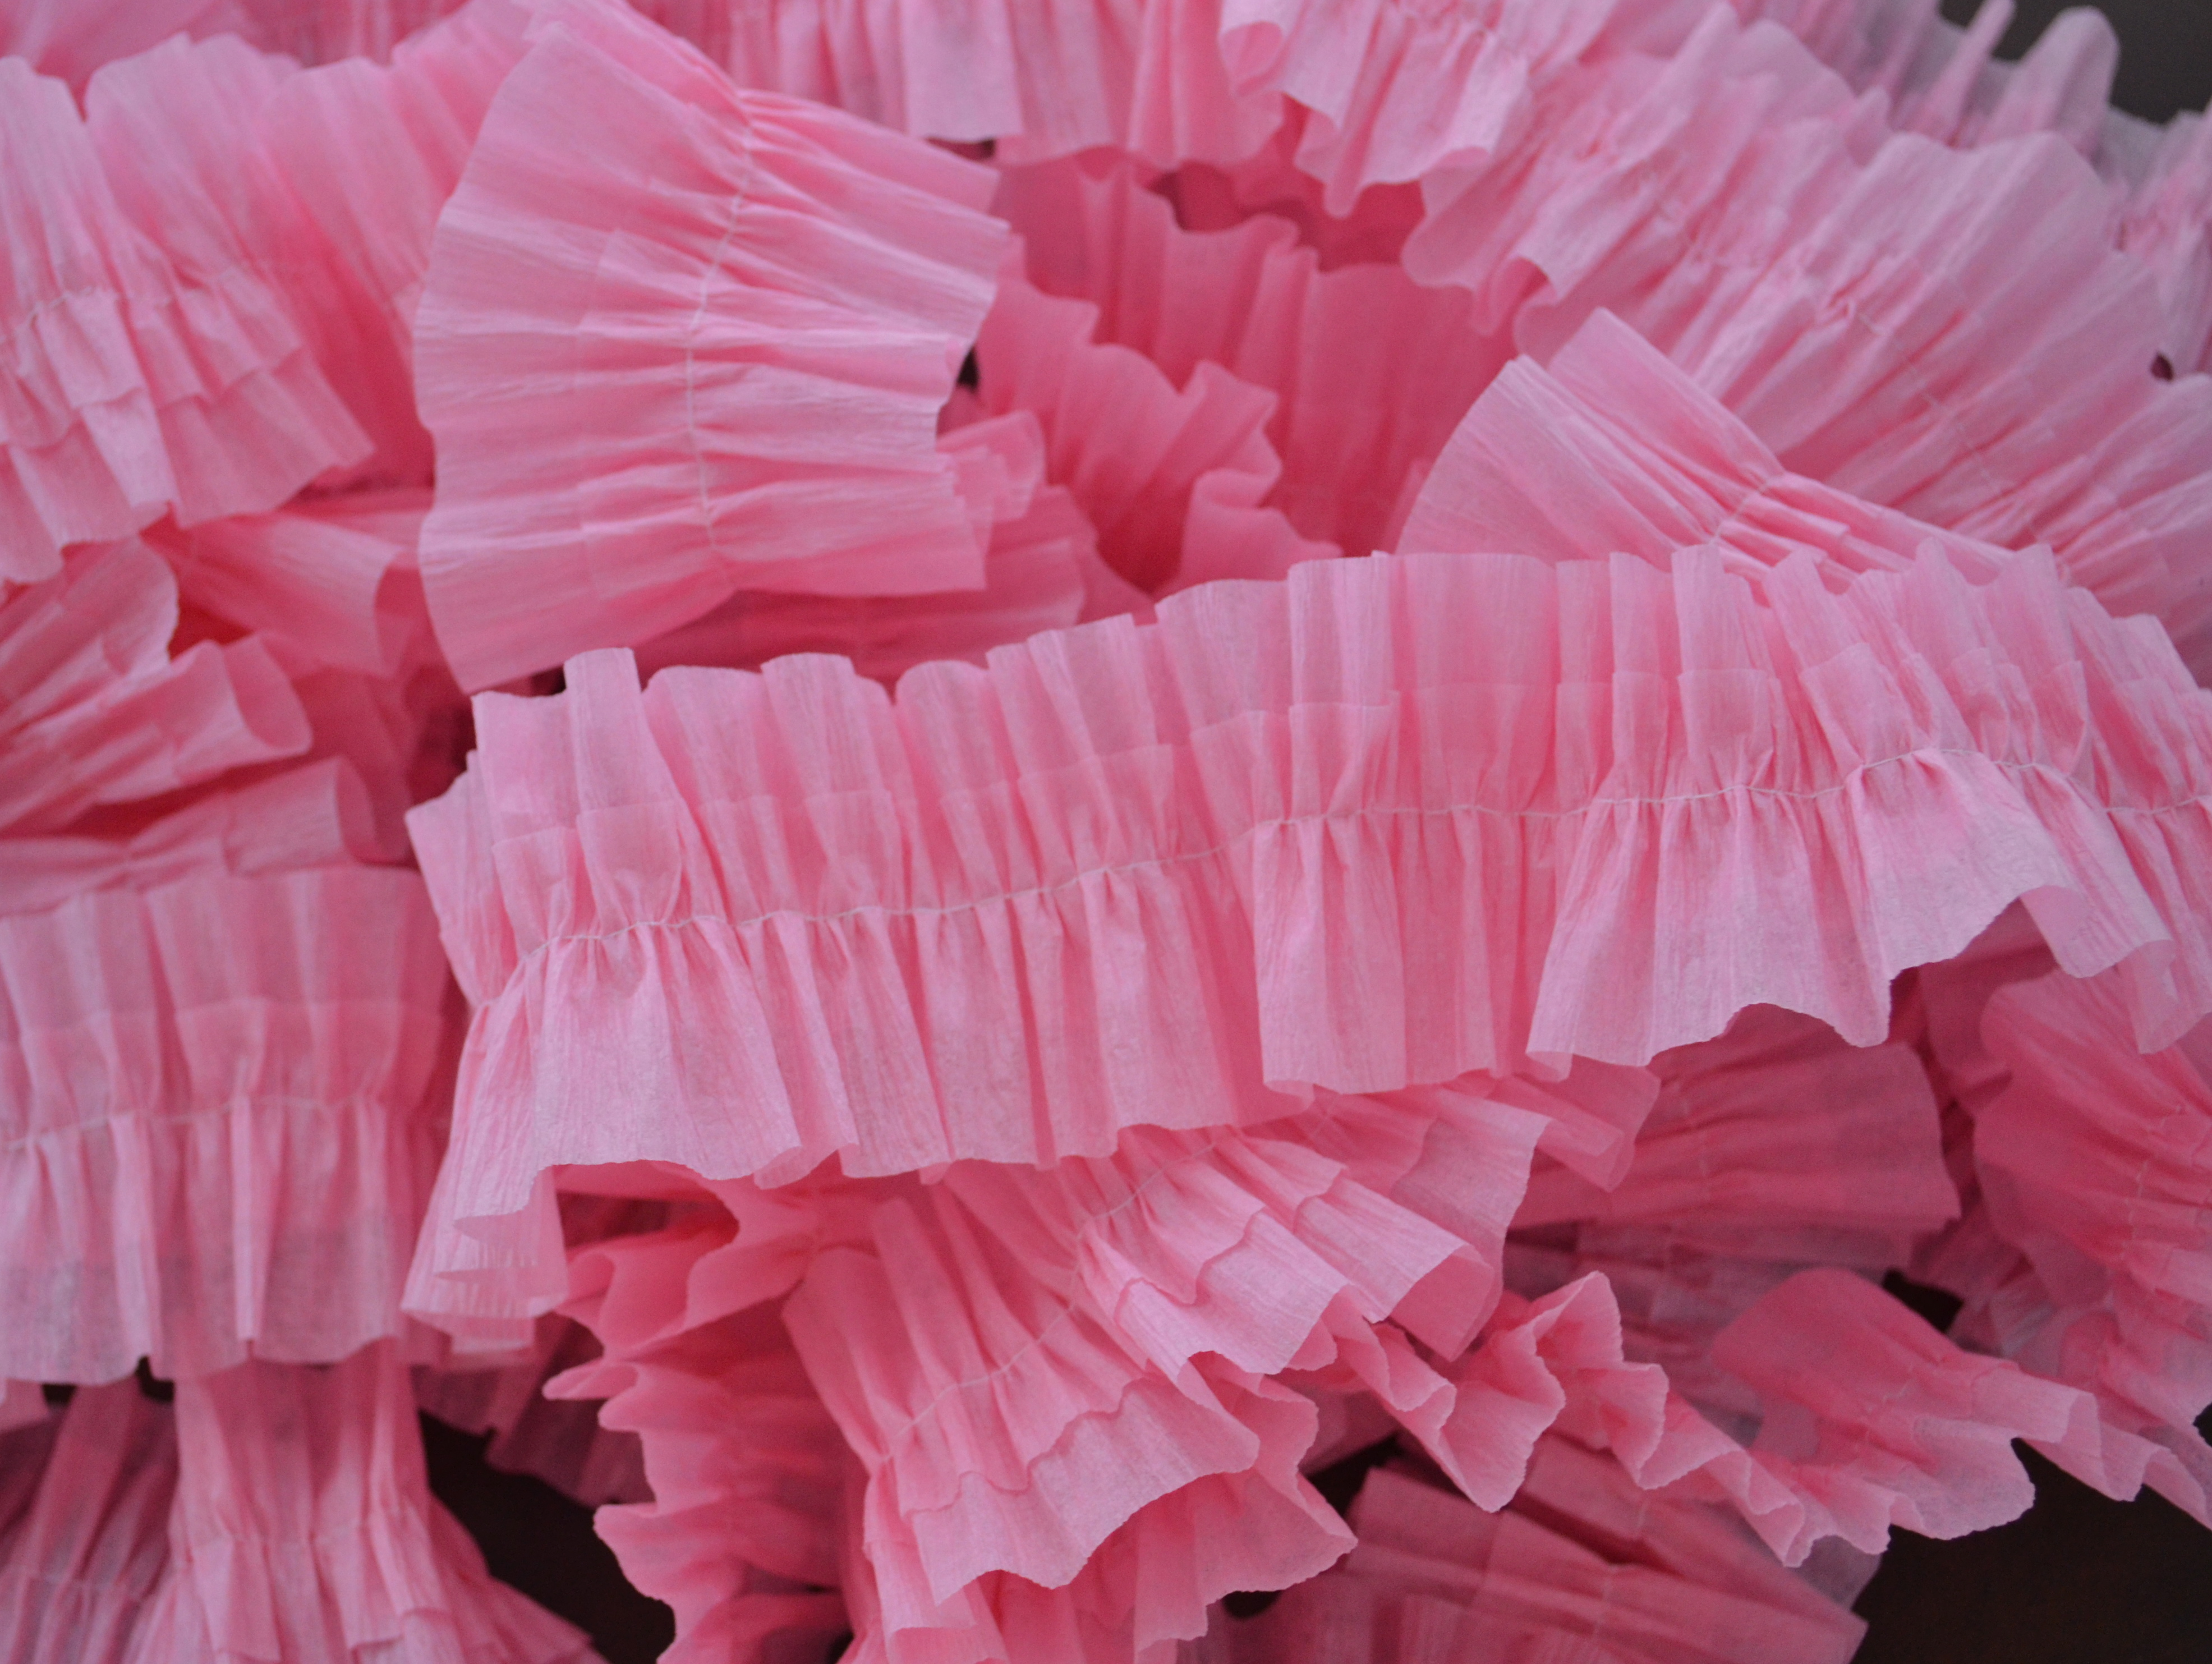 How to make ruffled crepe paper easy ruffled crepe paper - Birthday decorations with crepe paper ...